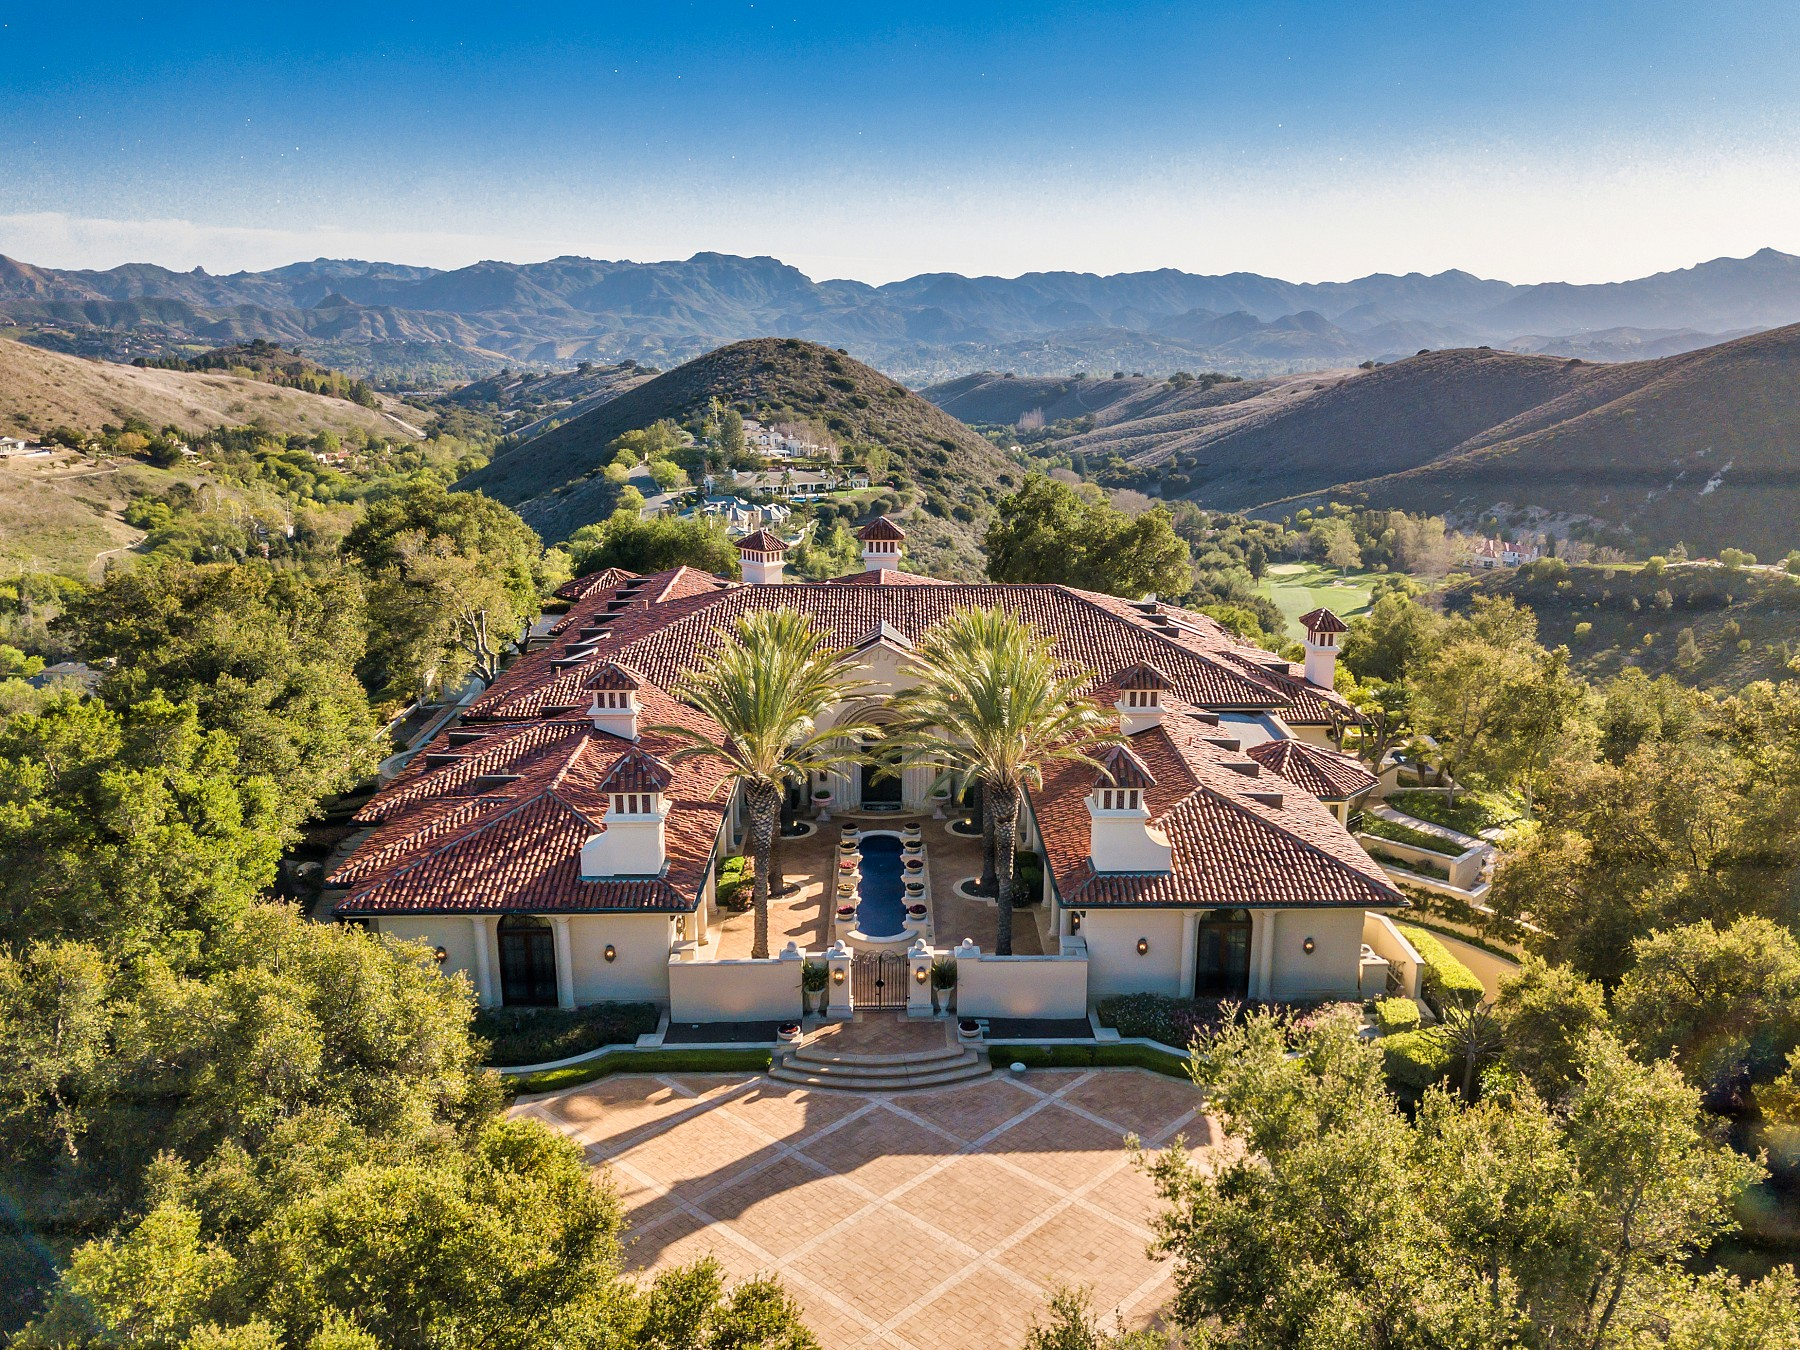 4994 Summit View Dr, Westlake Village, CA 91362